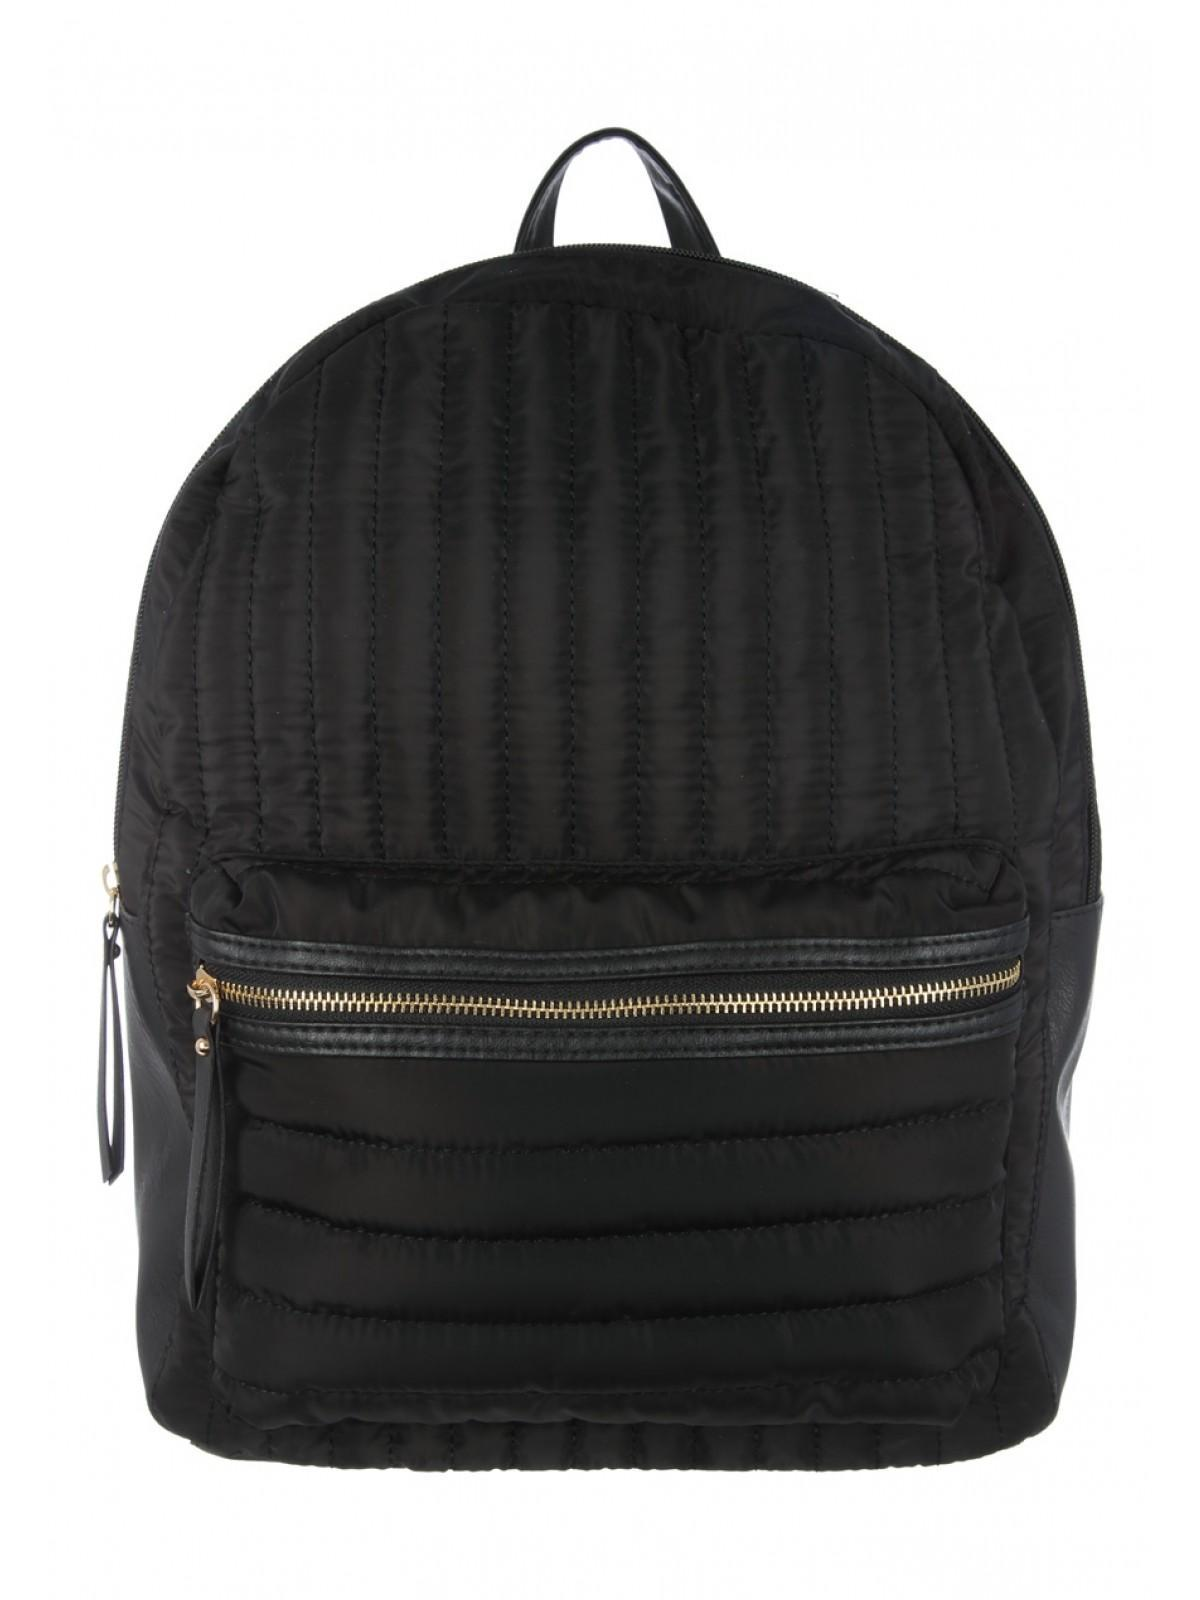 Womens Black Quilted Rucksack | Peacocks : black quilted rucksack - Adamdwight.com